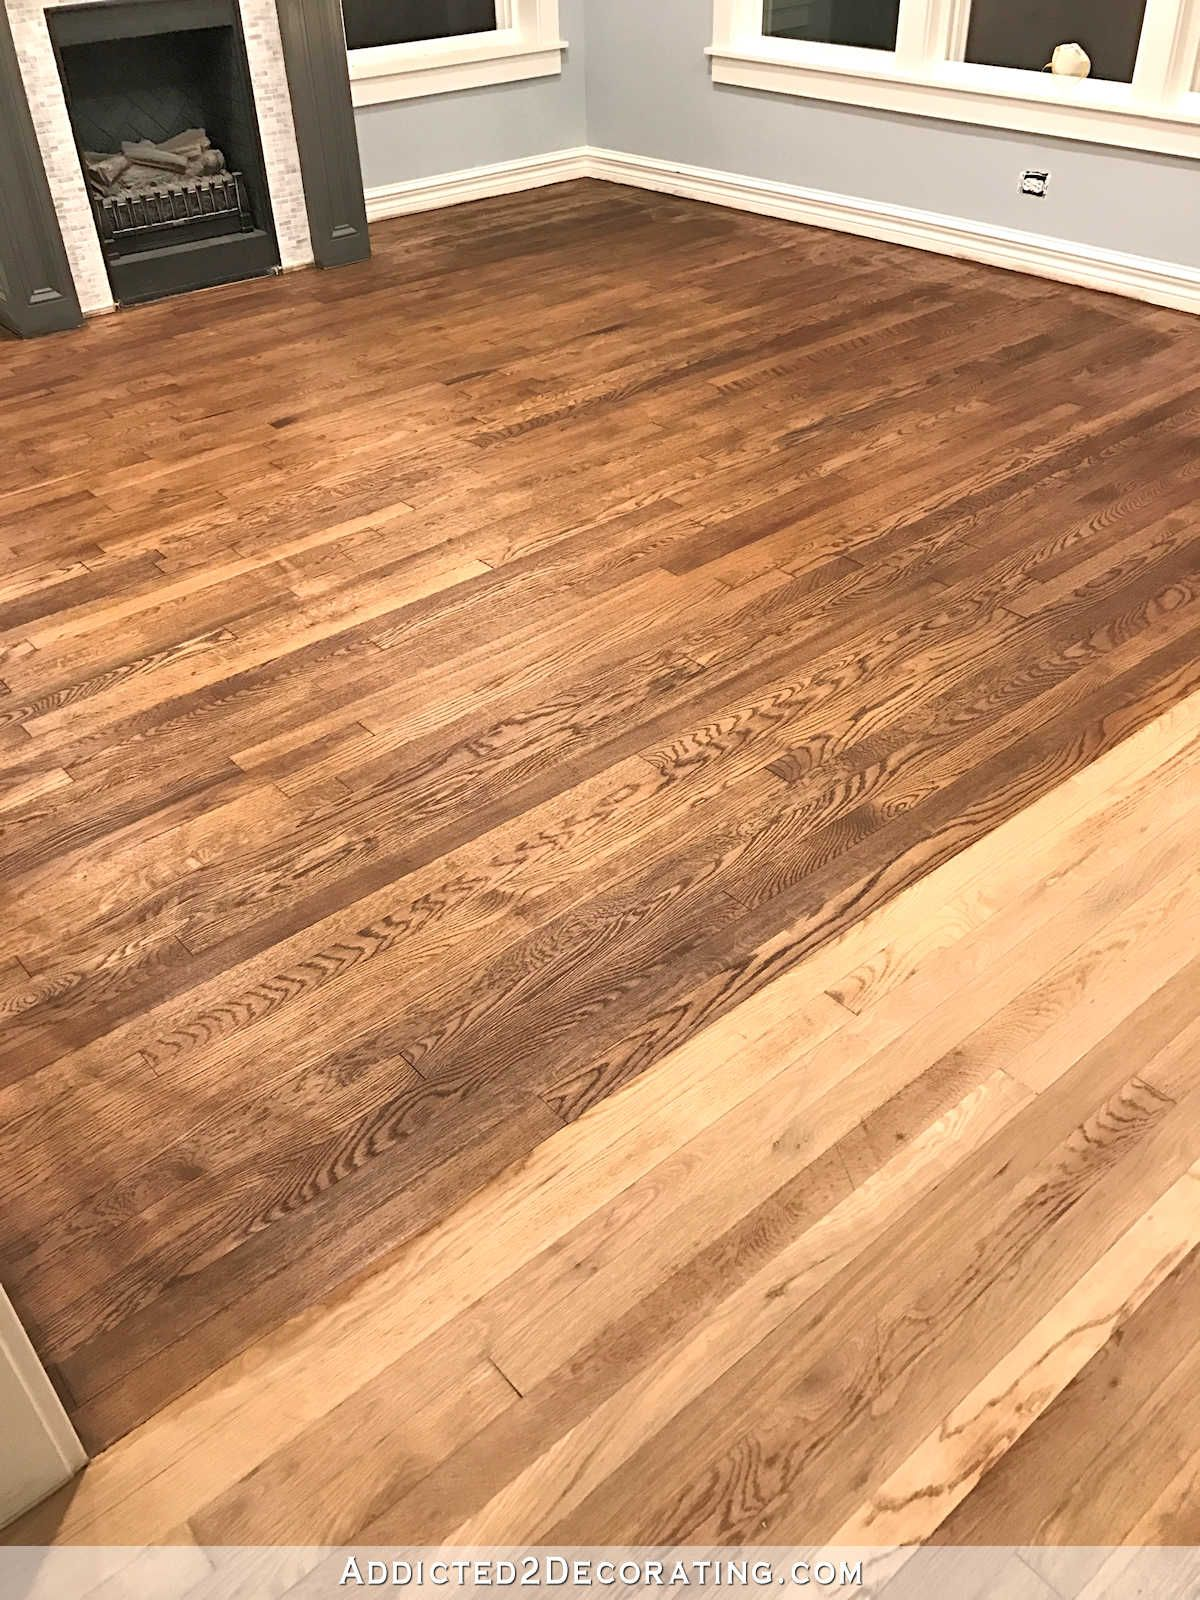 Adventures In Staining My Red Oak Hardwood Floors Products Process Addicted 2 Decorating Hardwood Floor Stain Colors Red Oak Hardwood Floors Refinishing Hardwood Floors